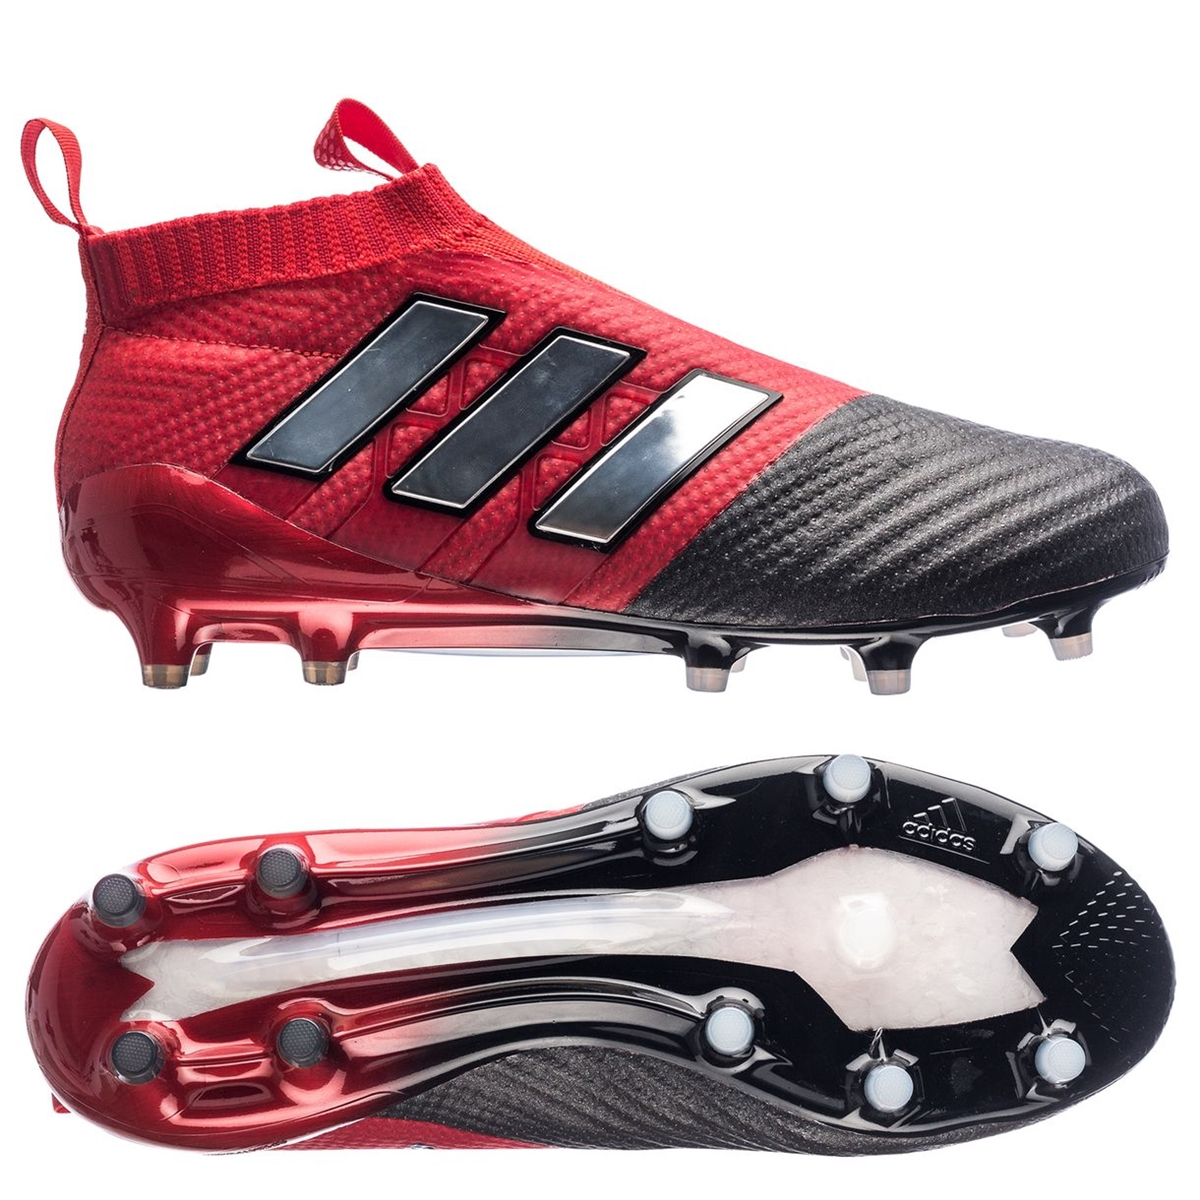 sports shoes cc14e 2e354 Adidas ACE 17+ PURECONTROL FG Soccer Cleats (Red White Black)